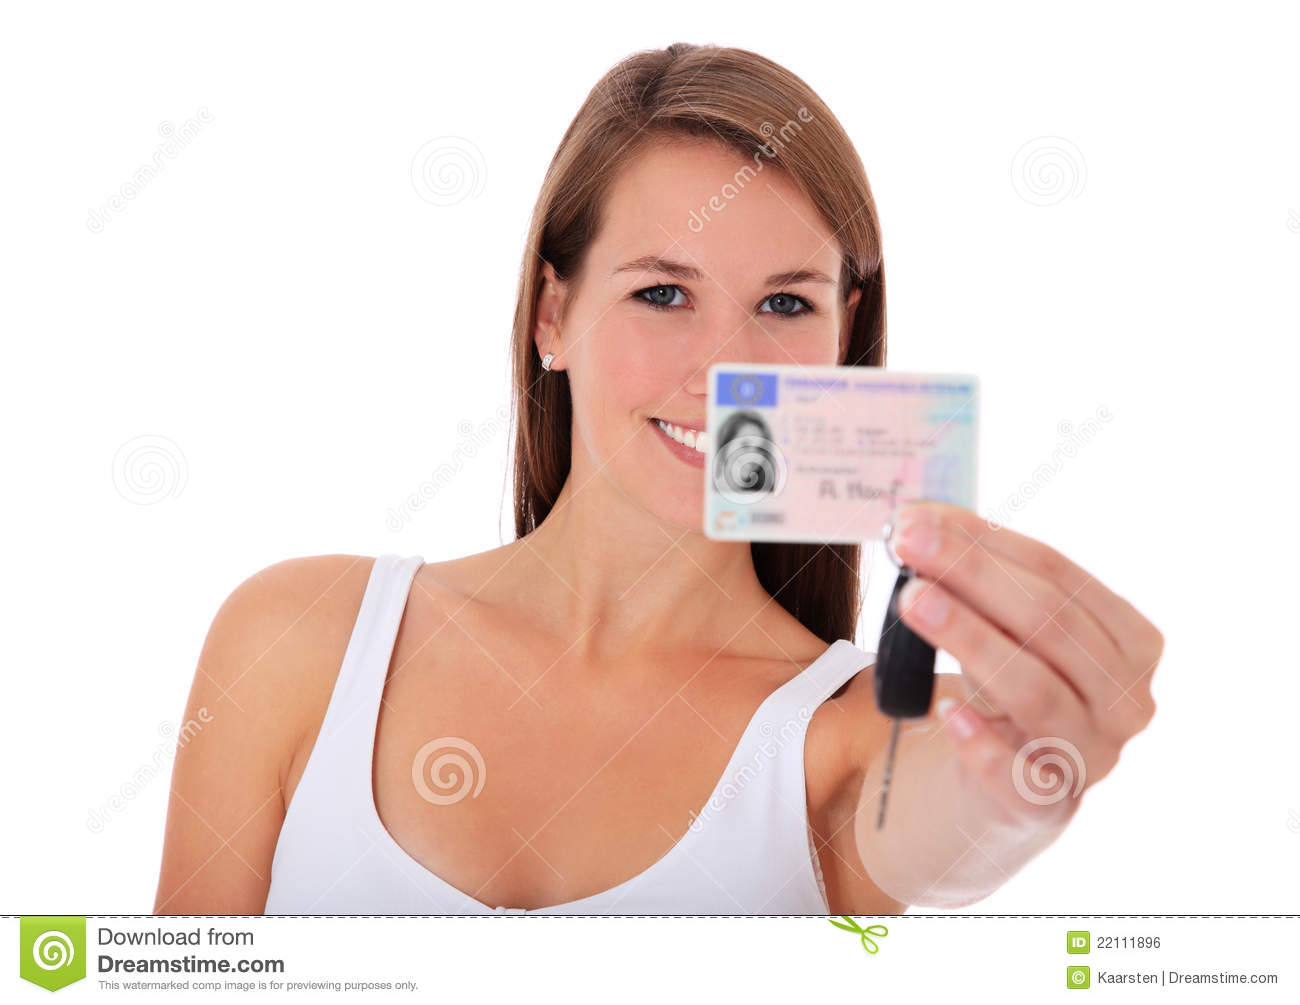 Are mistaken. drivers license and woman nude consider, that